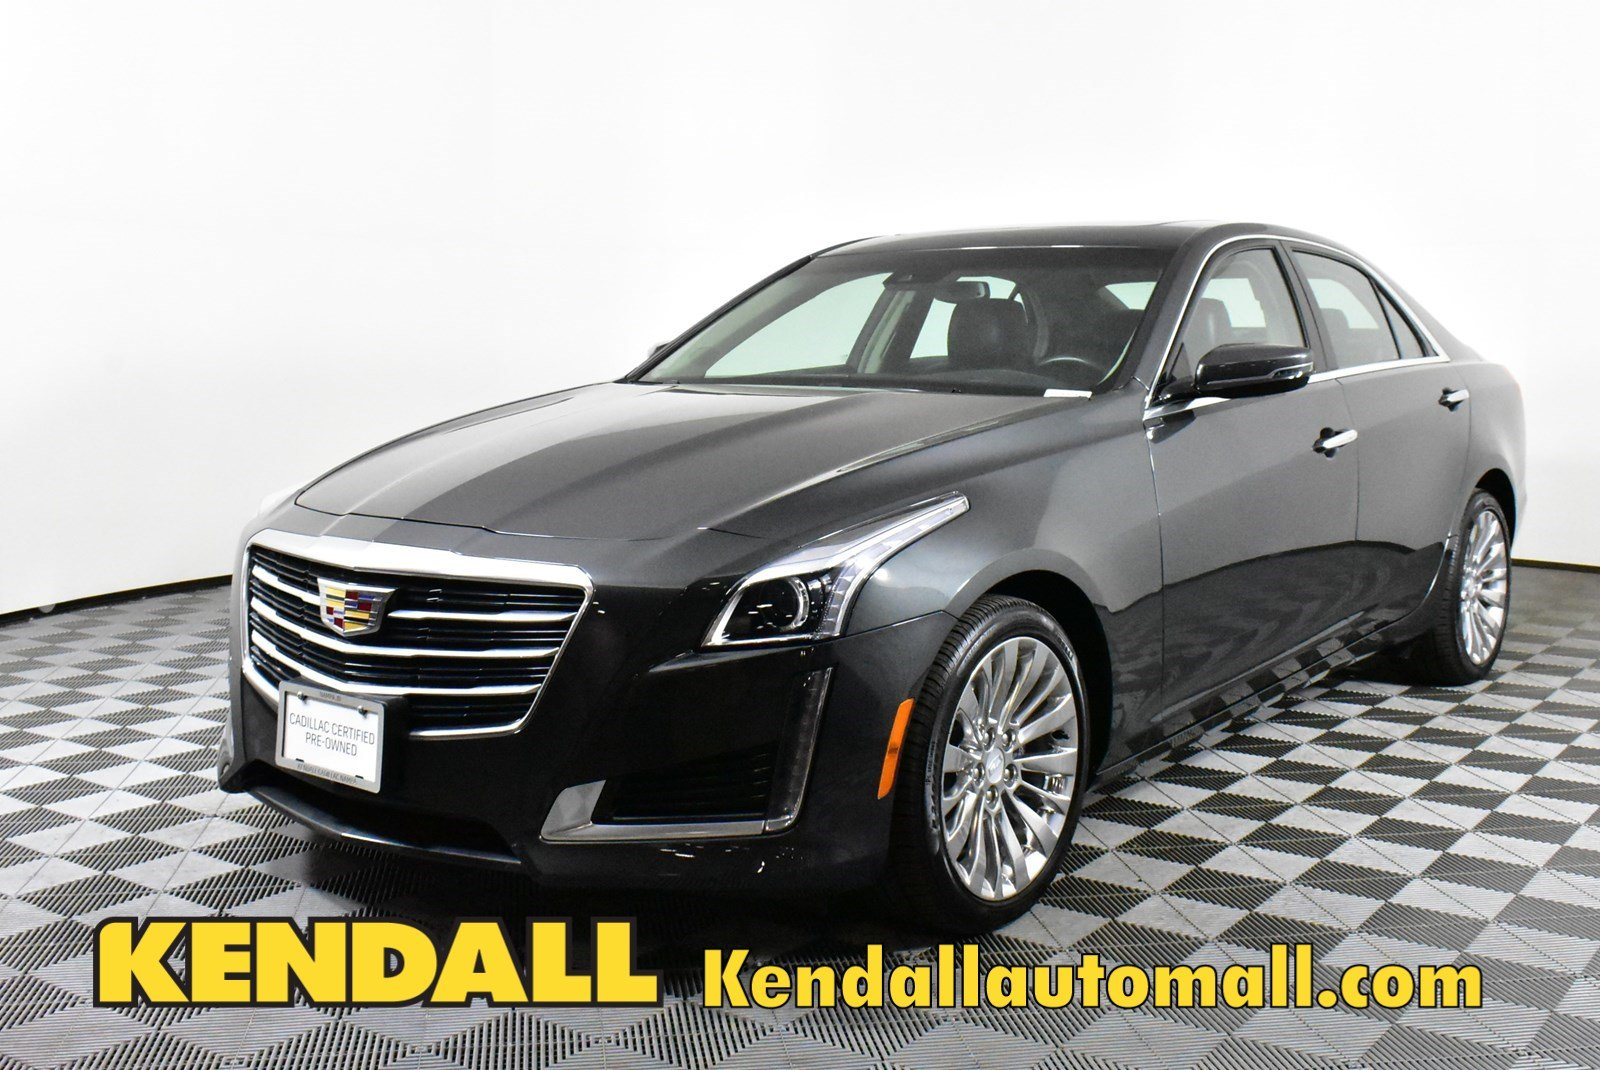 Certified Pre Owned 2016 Cadillac Cts Sedan Luxury Collection Awd In Nampa Du89042 Kendall At The Idaho Center Auto Mall